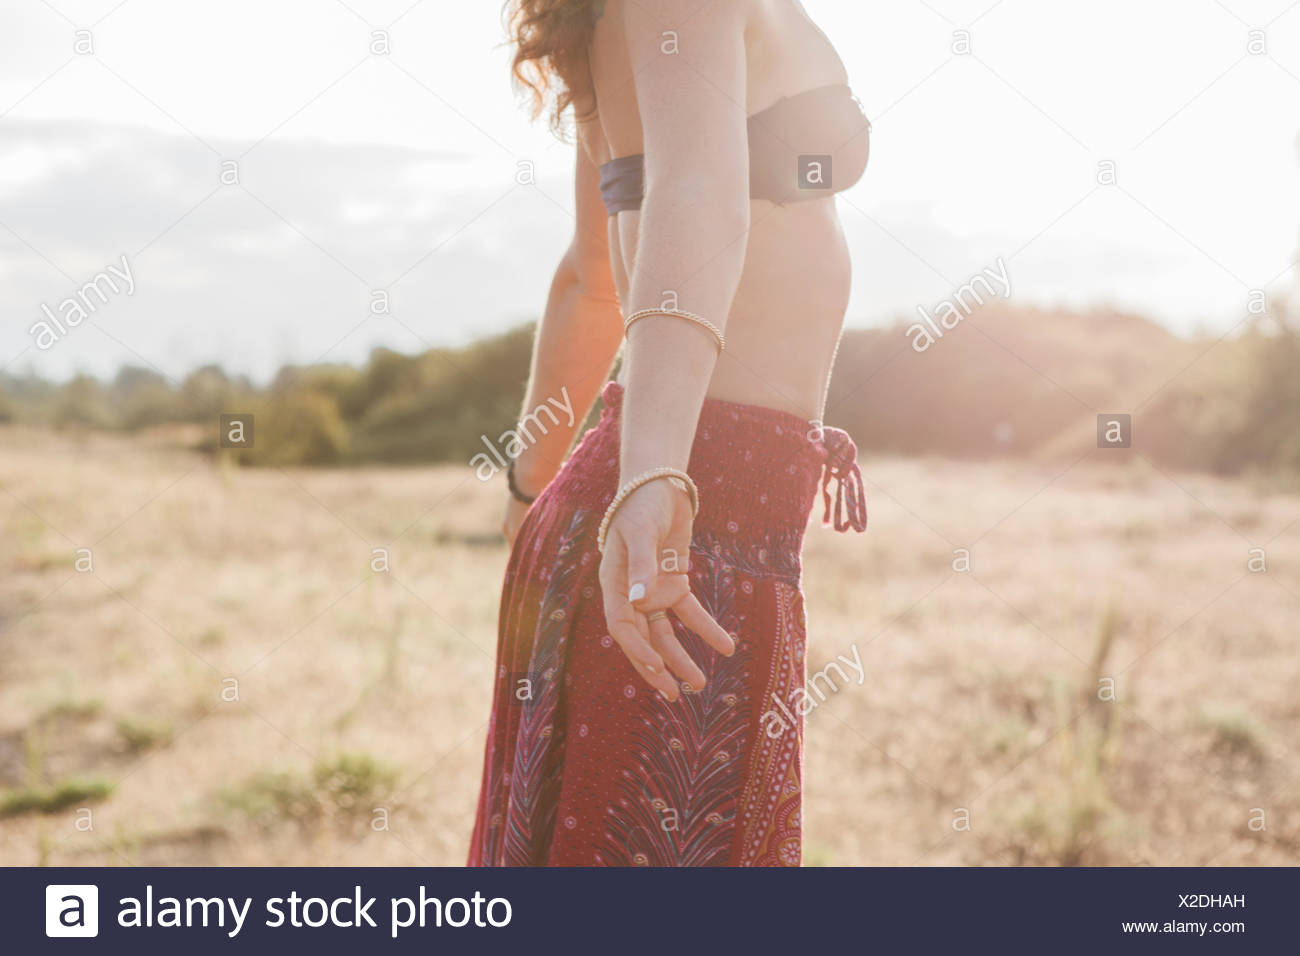 Boho woman in bikini top and skirt with arms outstretched in sunny rural field - Stock Image